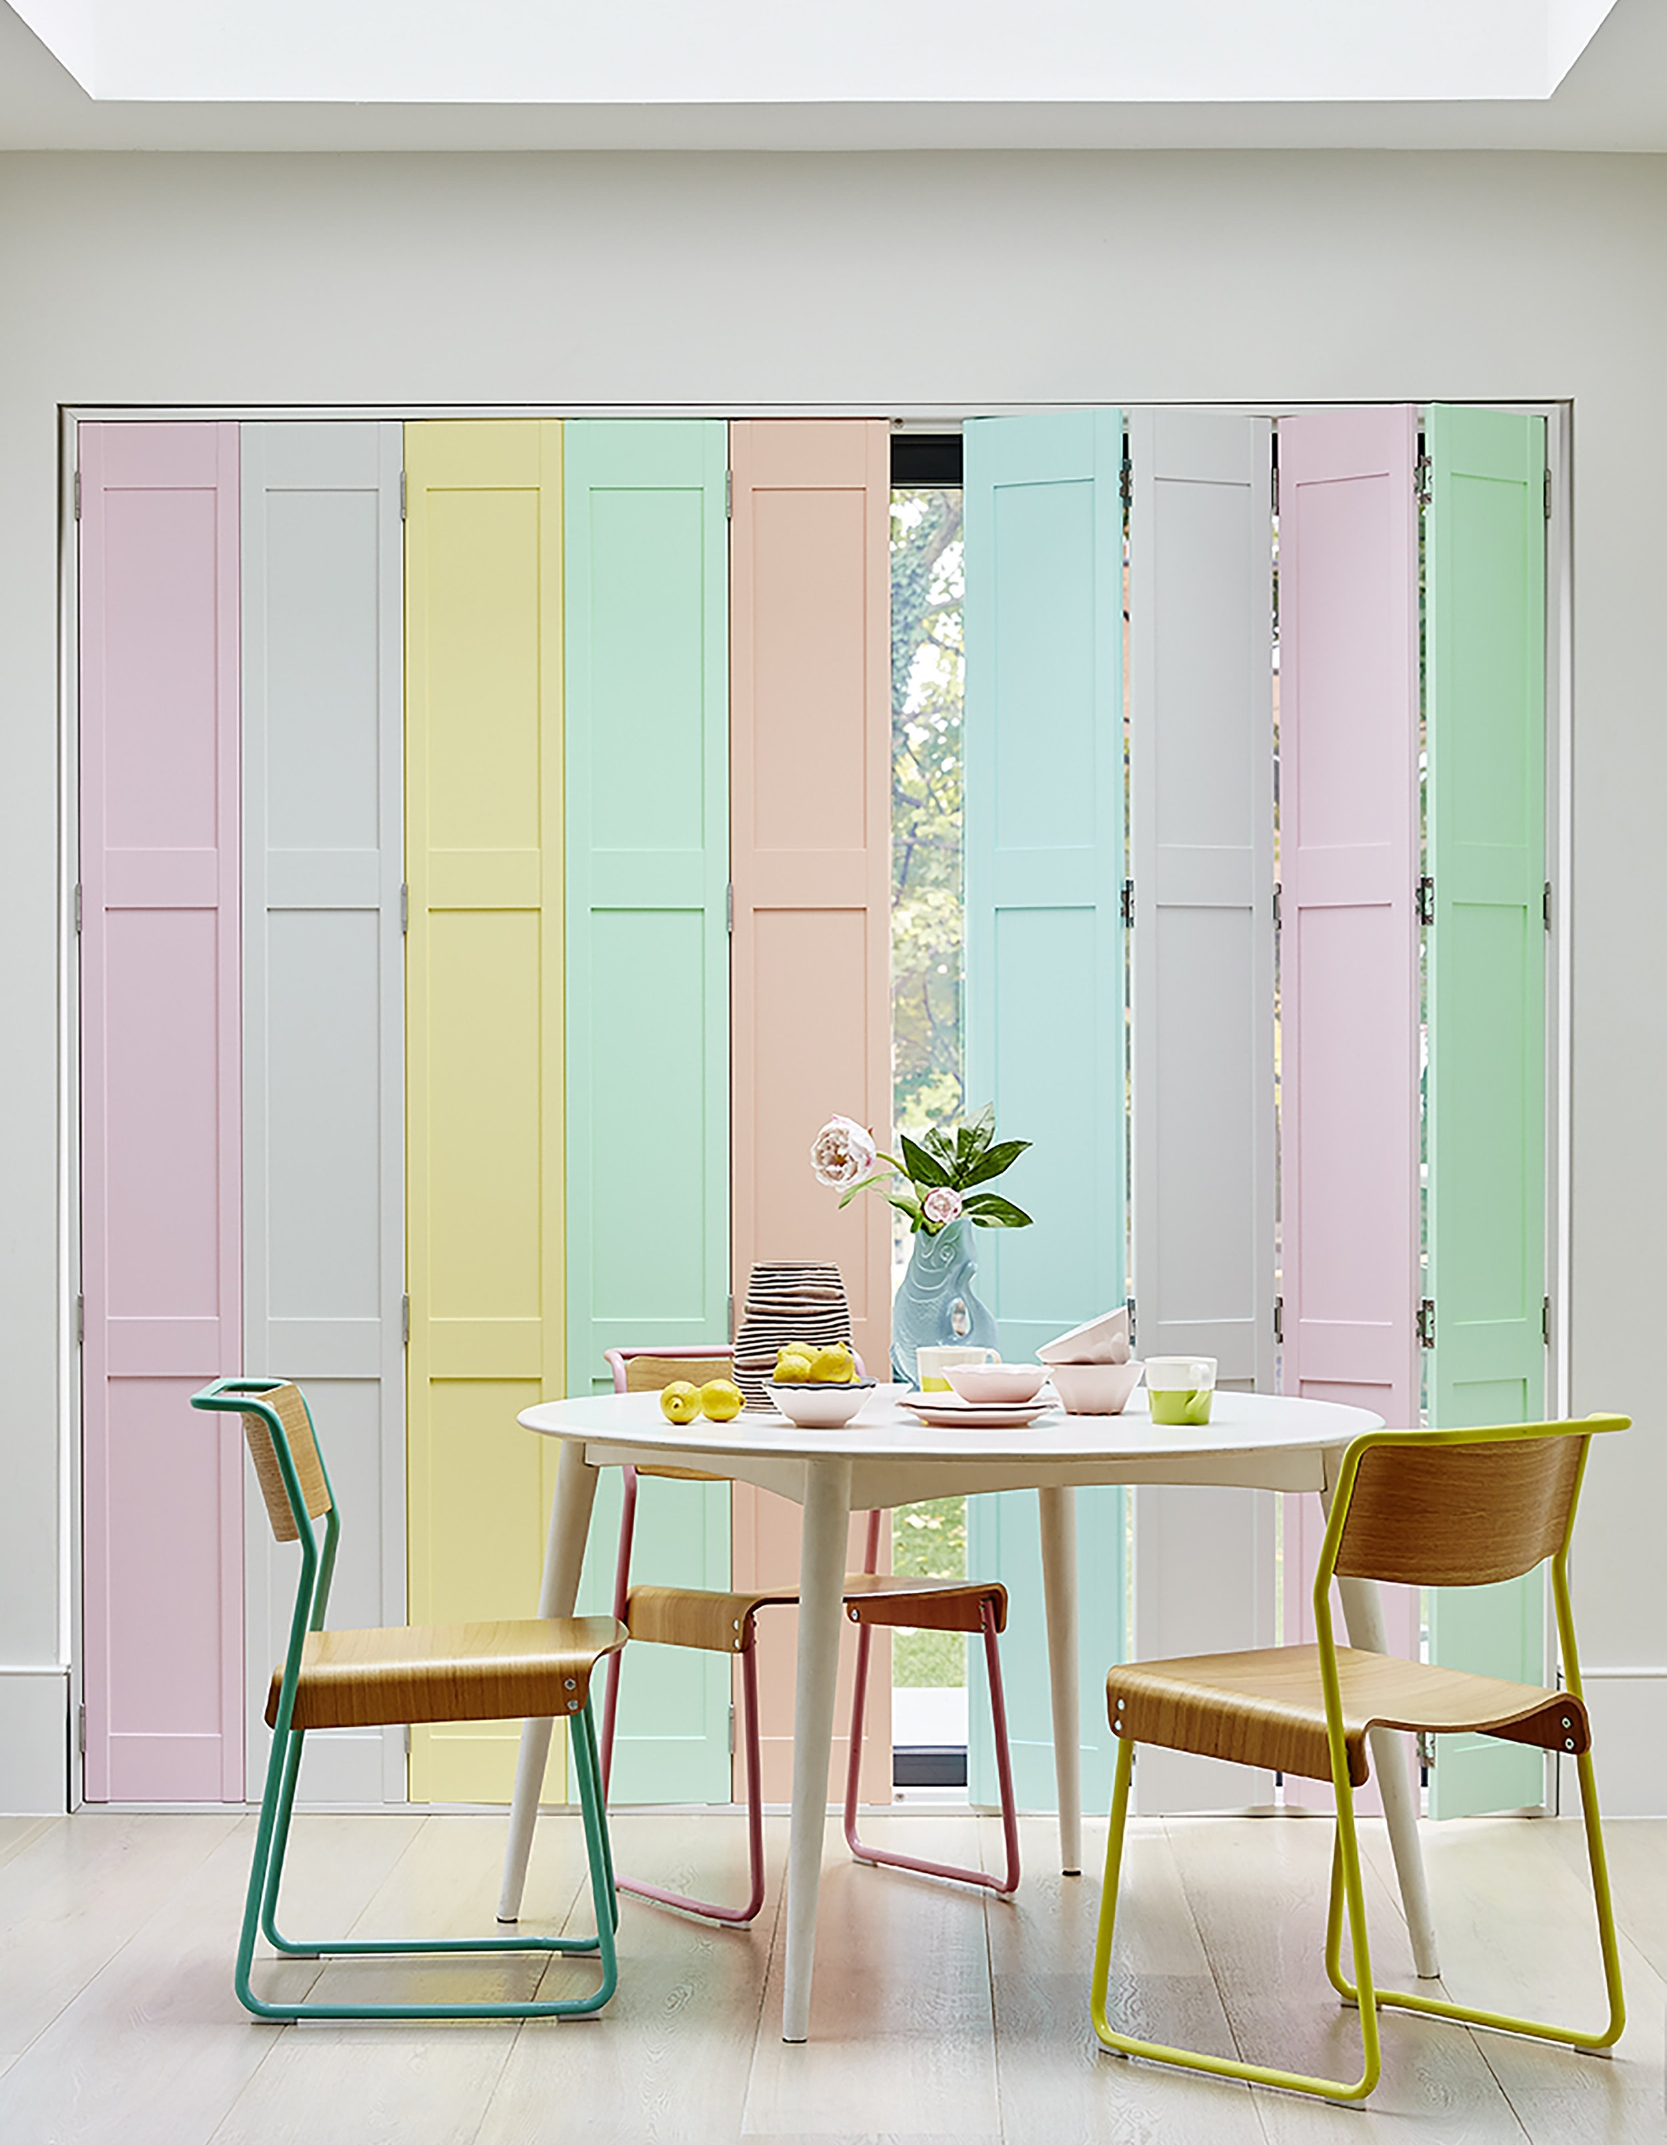 These tracked door shutters in various pastel shades add a real contemporary wow factor to this dining room.